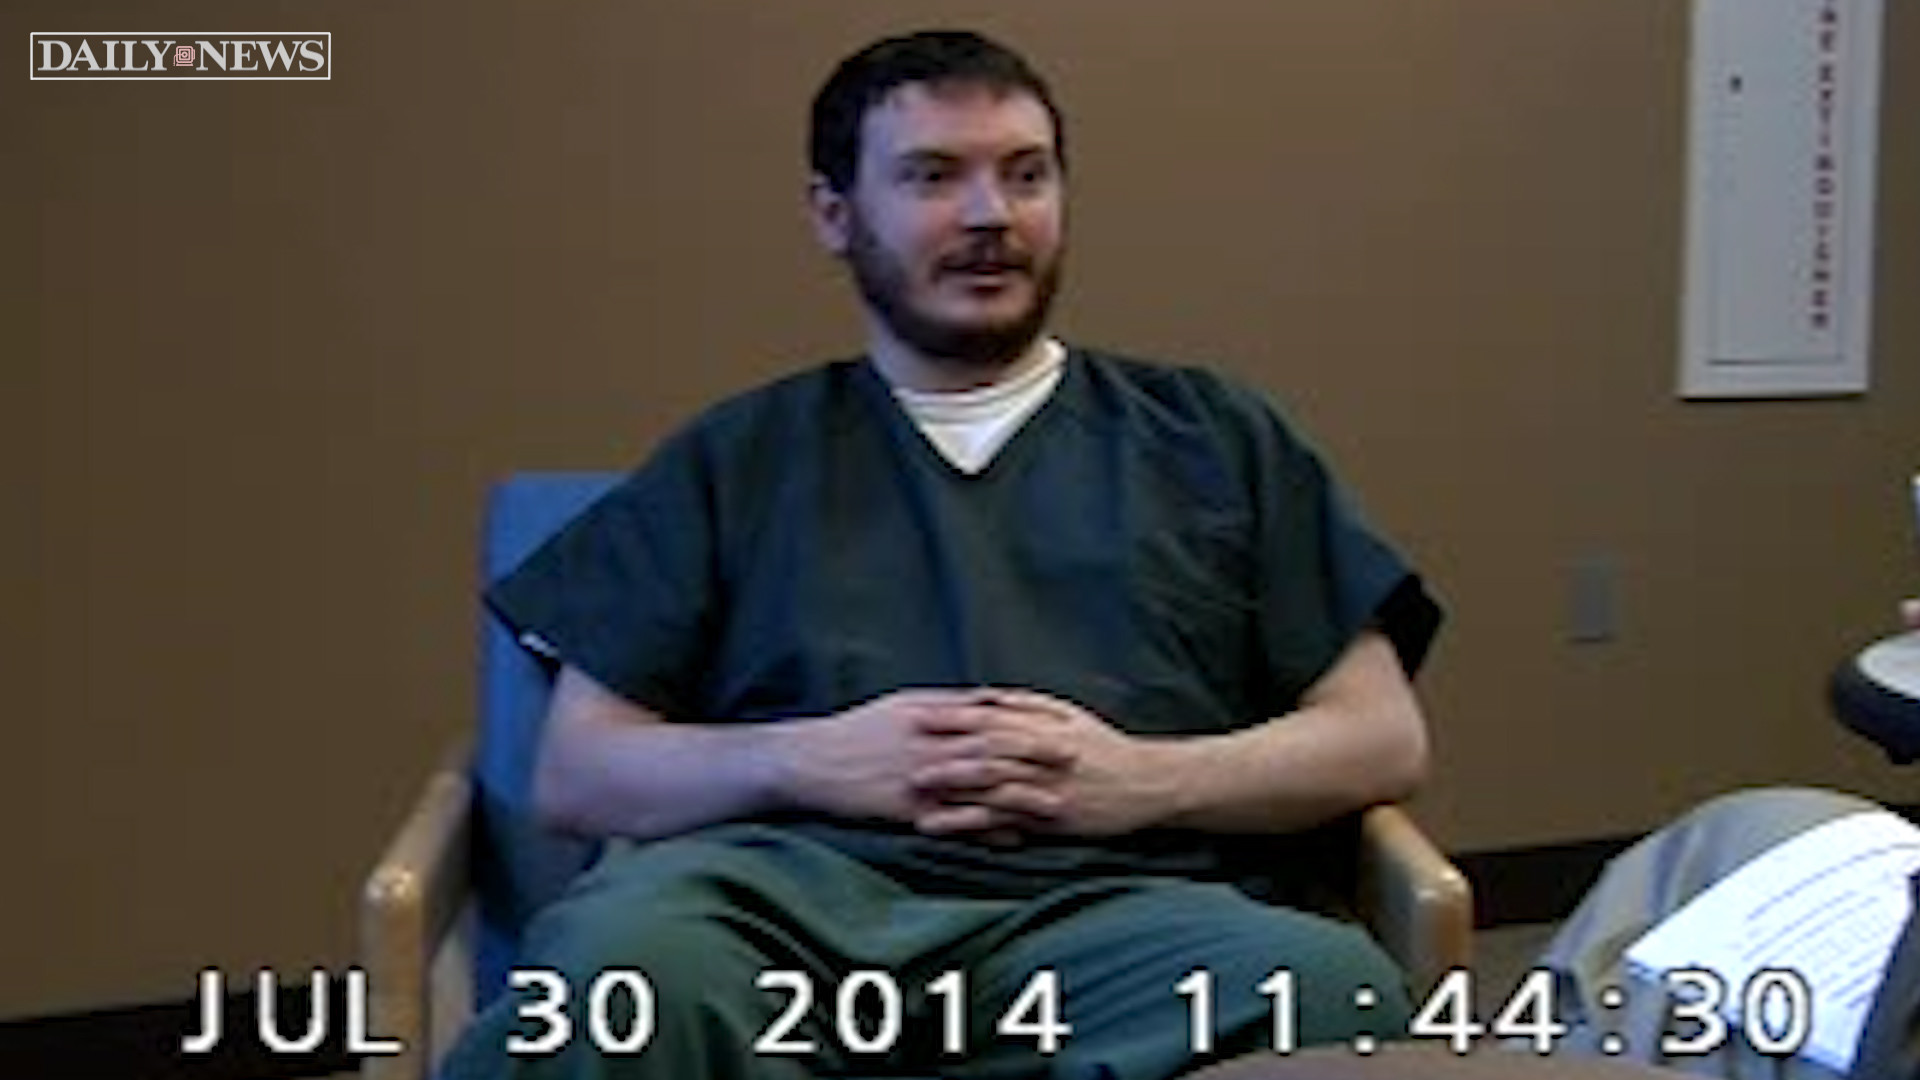 Stunning Tapes Of Colorado Movie Theater Gunman James Holmes Sanity Evaluation Made Public New York Daily News